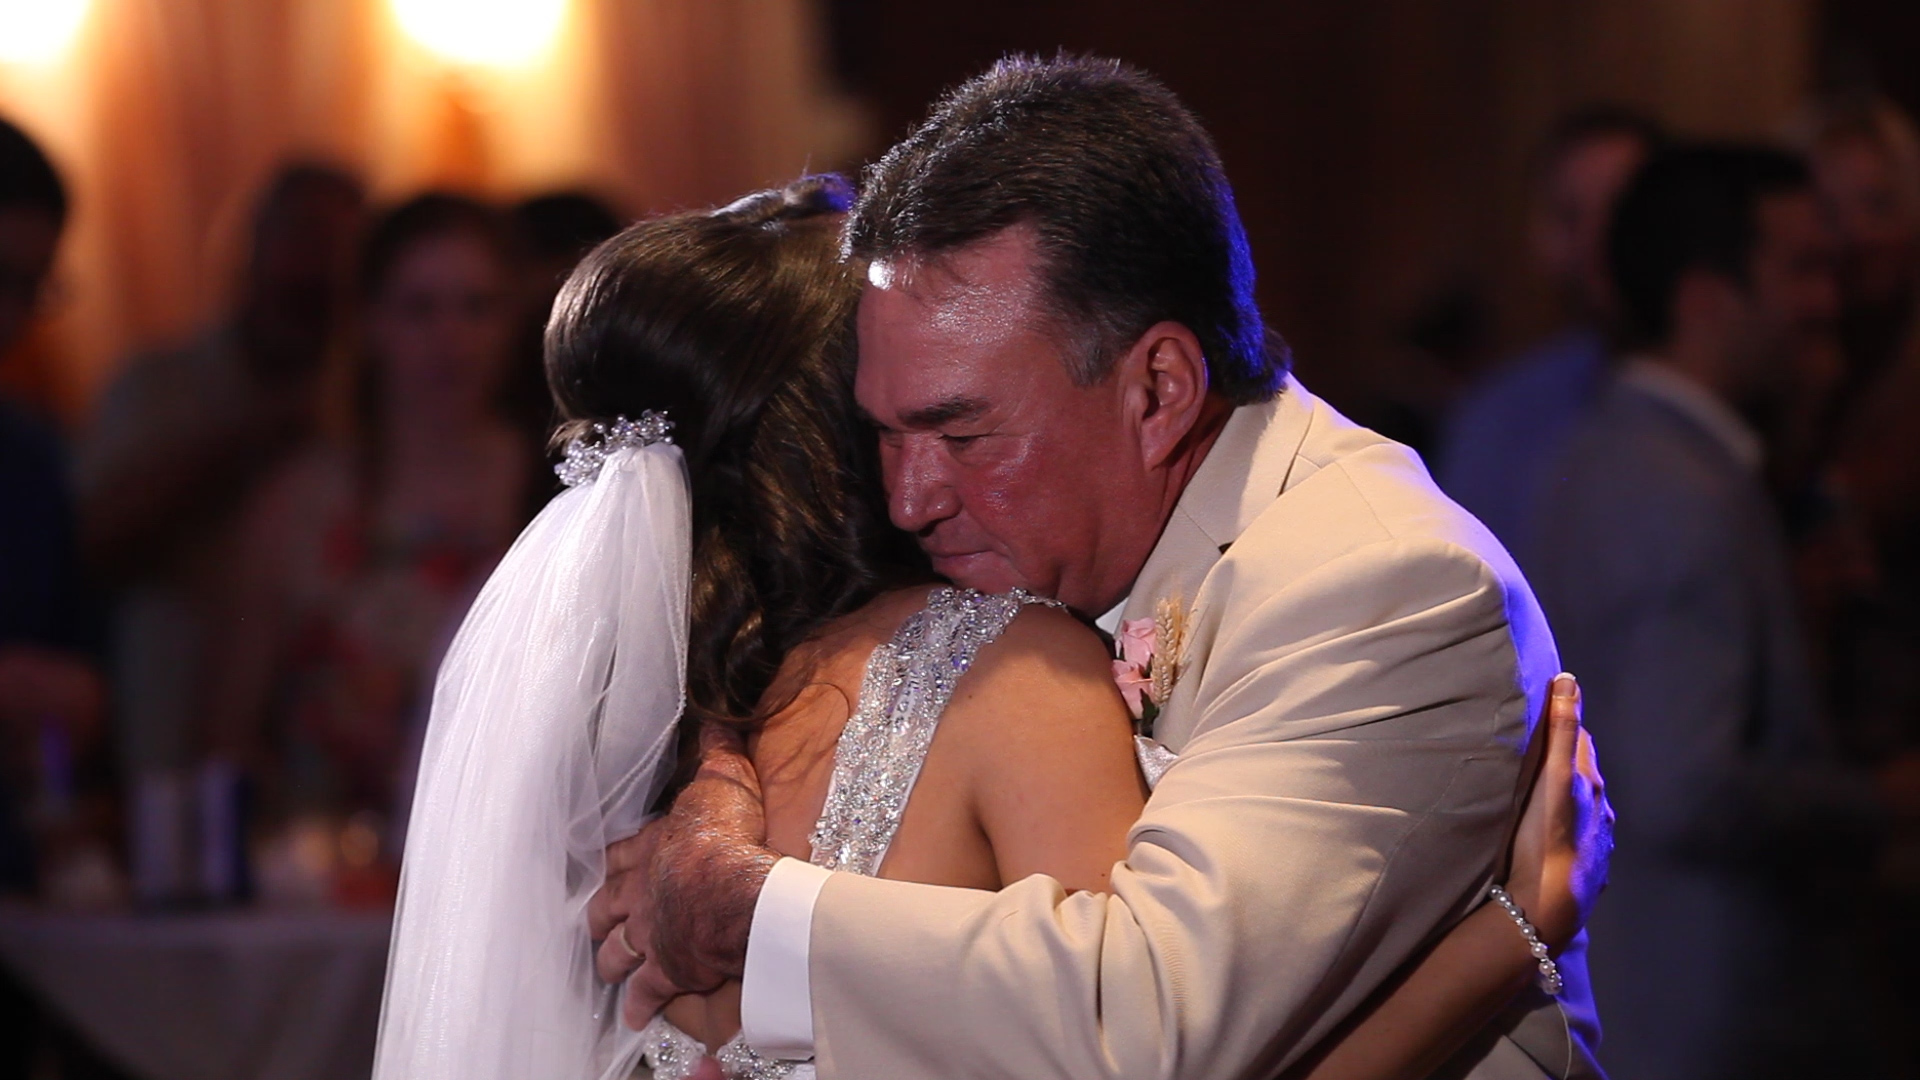 More sweet father daughter love.